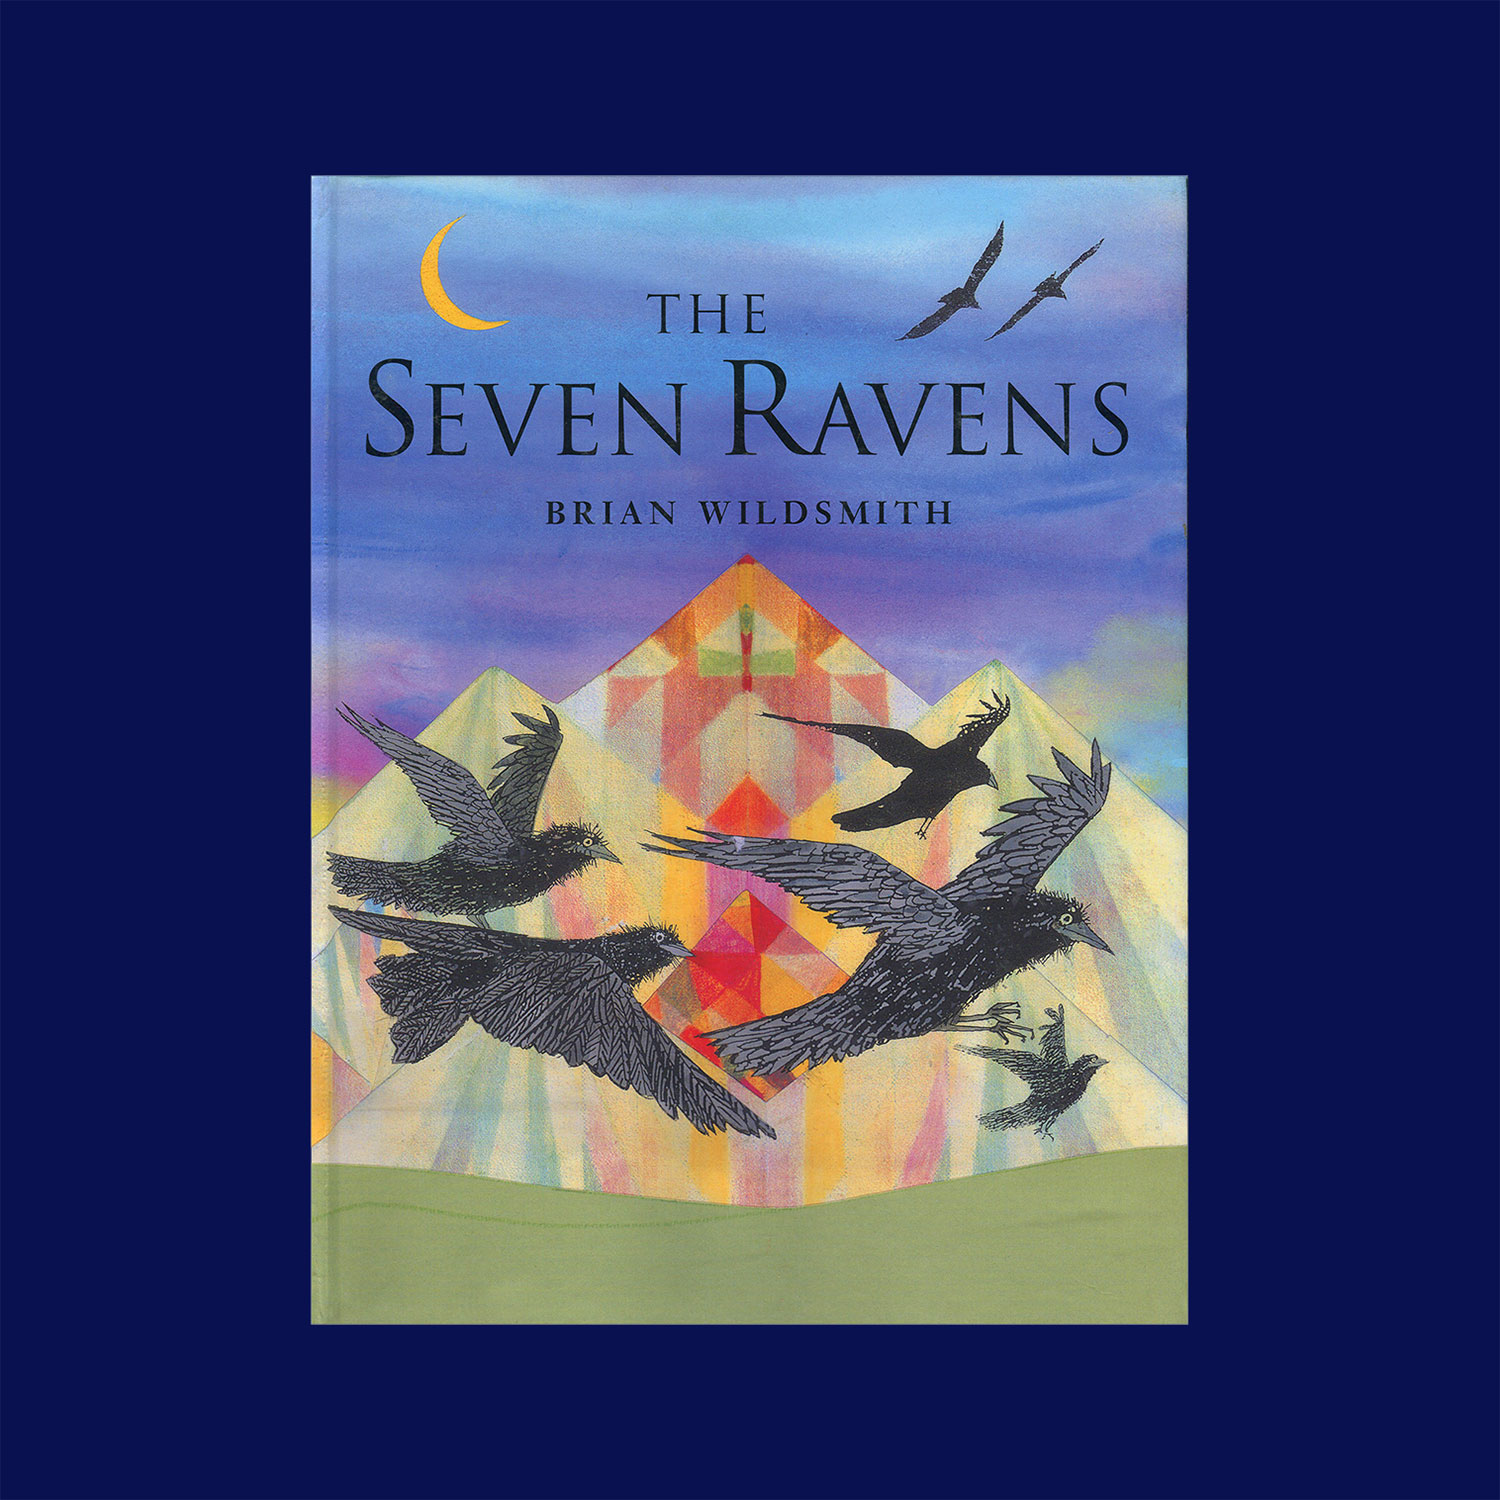 """THE SEVEN RAVENS - 2000""""The seven ravens are seven brothers transformed into birds by their fathers impetuous curse after they had neglected their baby sister. When Anna grows up, she sets off on a great quest to free the boys from enchantment. A voyage depicted in a deeply enjoyable blend of kaleidoscopic colour-play and careful, detailed drawings. Very highly recommended for shared and individual reading.""""Books for Keeps"""